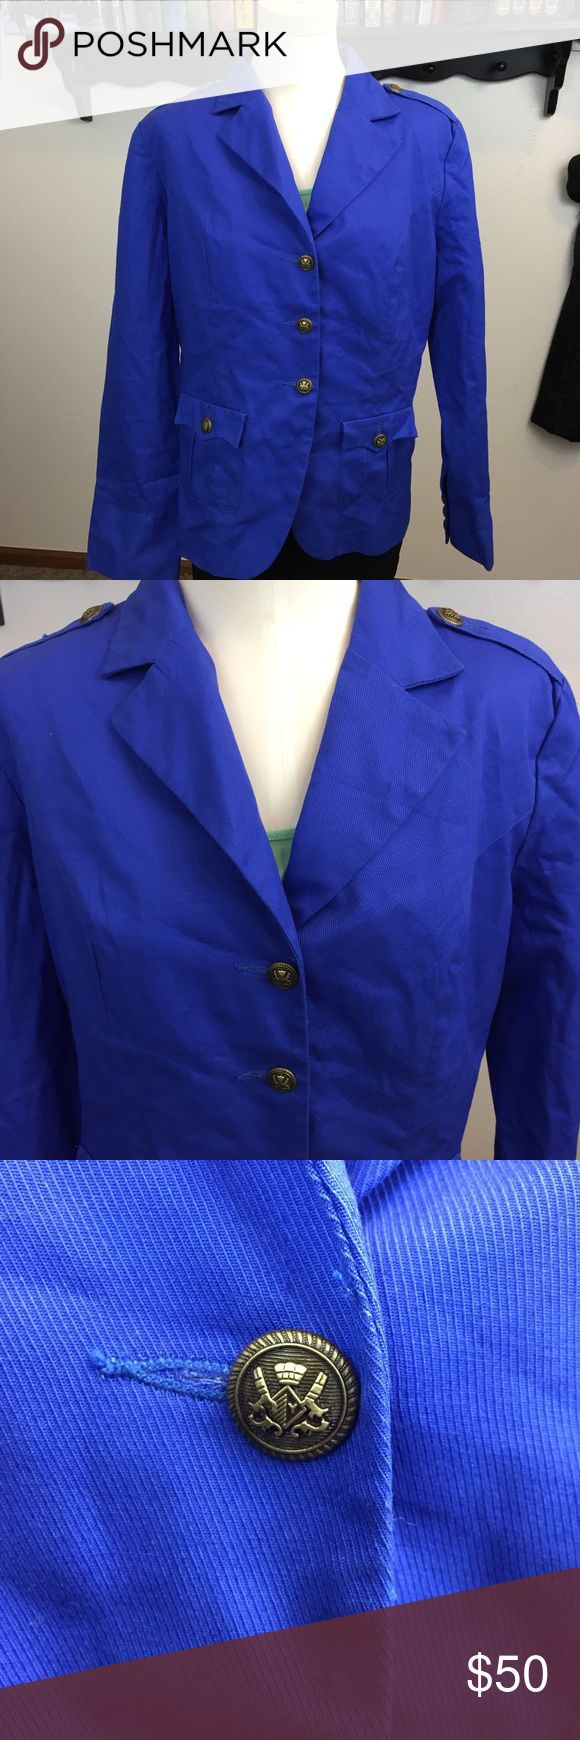 🍁TWIGGY LONDON Cobalt Blue  Blazer Jacket ~Get this royalesque blue blazer! ~Inspired by London fanfare brought to you by #fabulous! ~This features a classic oversized blazer style. ~This has been worn a few times.  This is in good condition! ~Get this now!   ~NO TRADES Twiggy London Jackets & Coats Blazers